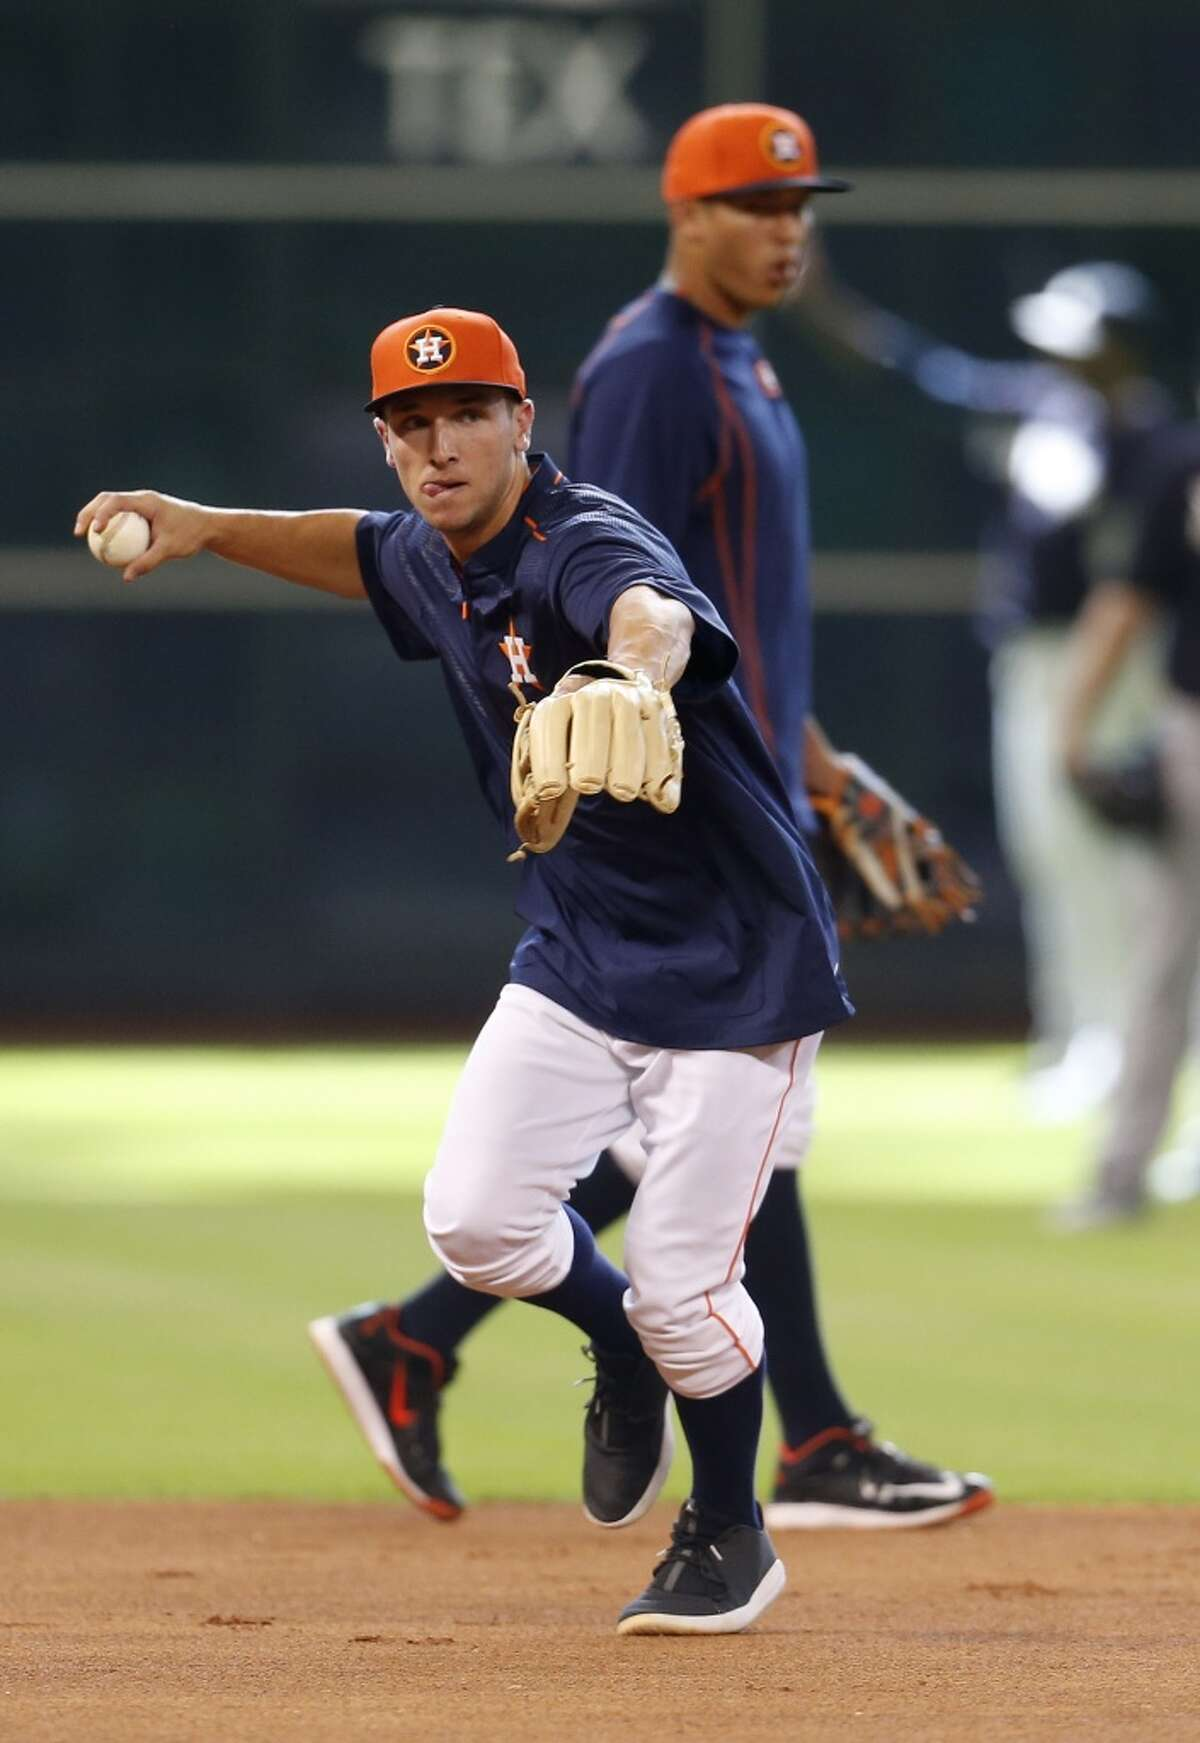 Houston Astros signed shortstop Alex Bregman, who was selected with the second overall pick in the 2015 MLB First Year Player Draft, after he took batting practice before the start of an MLB game at Minute Maid Park on Thursday, June 25, 2015, in Houston. ( Karen Warren / Houston Chronicle )